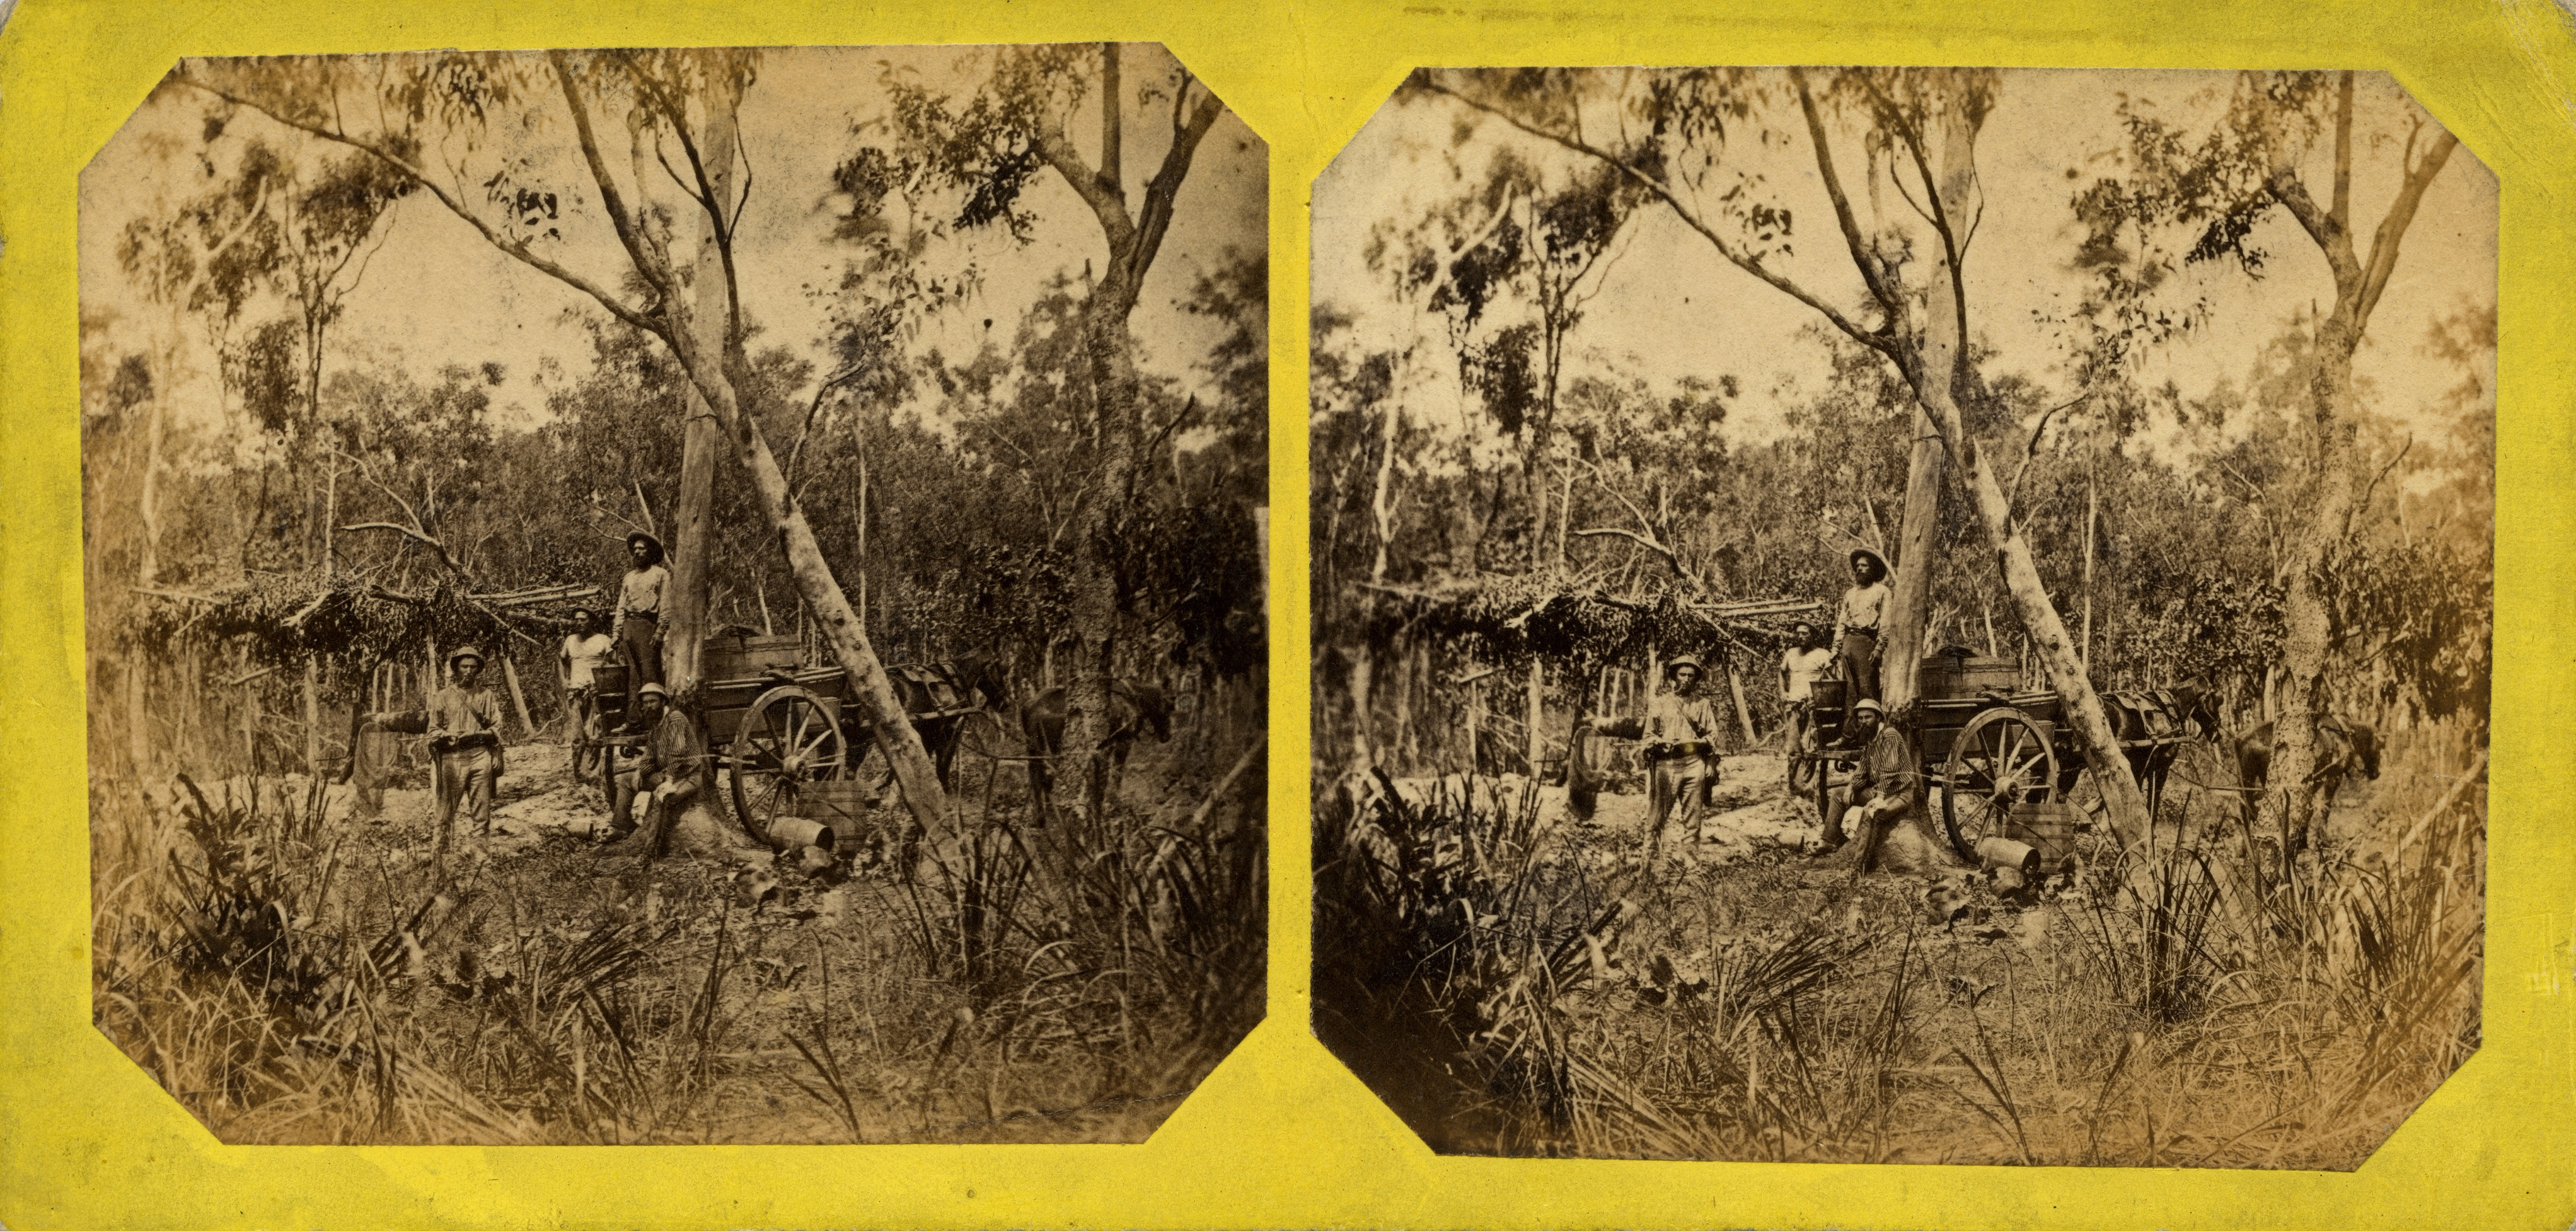 Stereoscopic image of collecting water from the Government well, Doctor's Gully, 1869